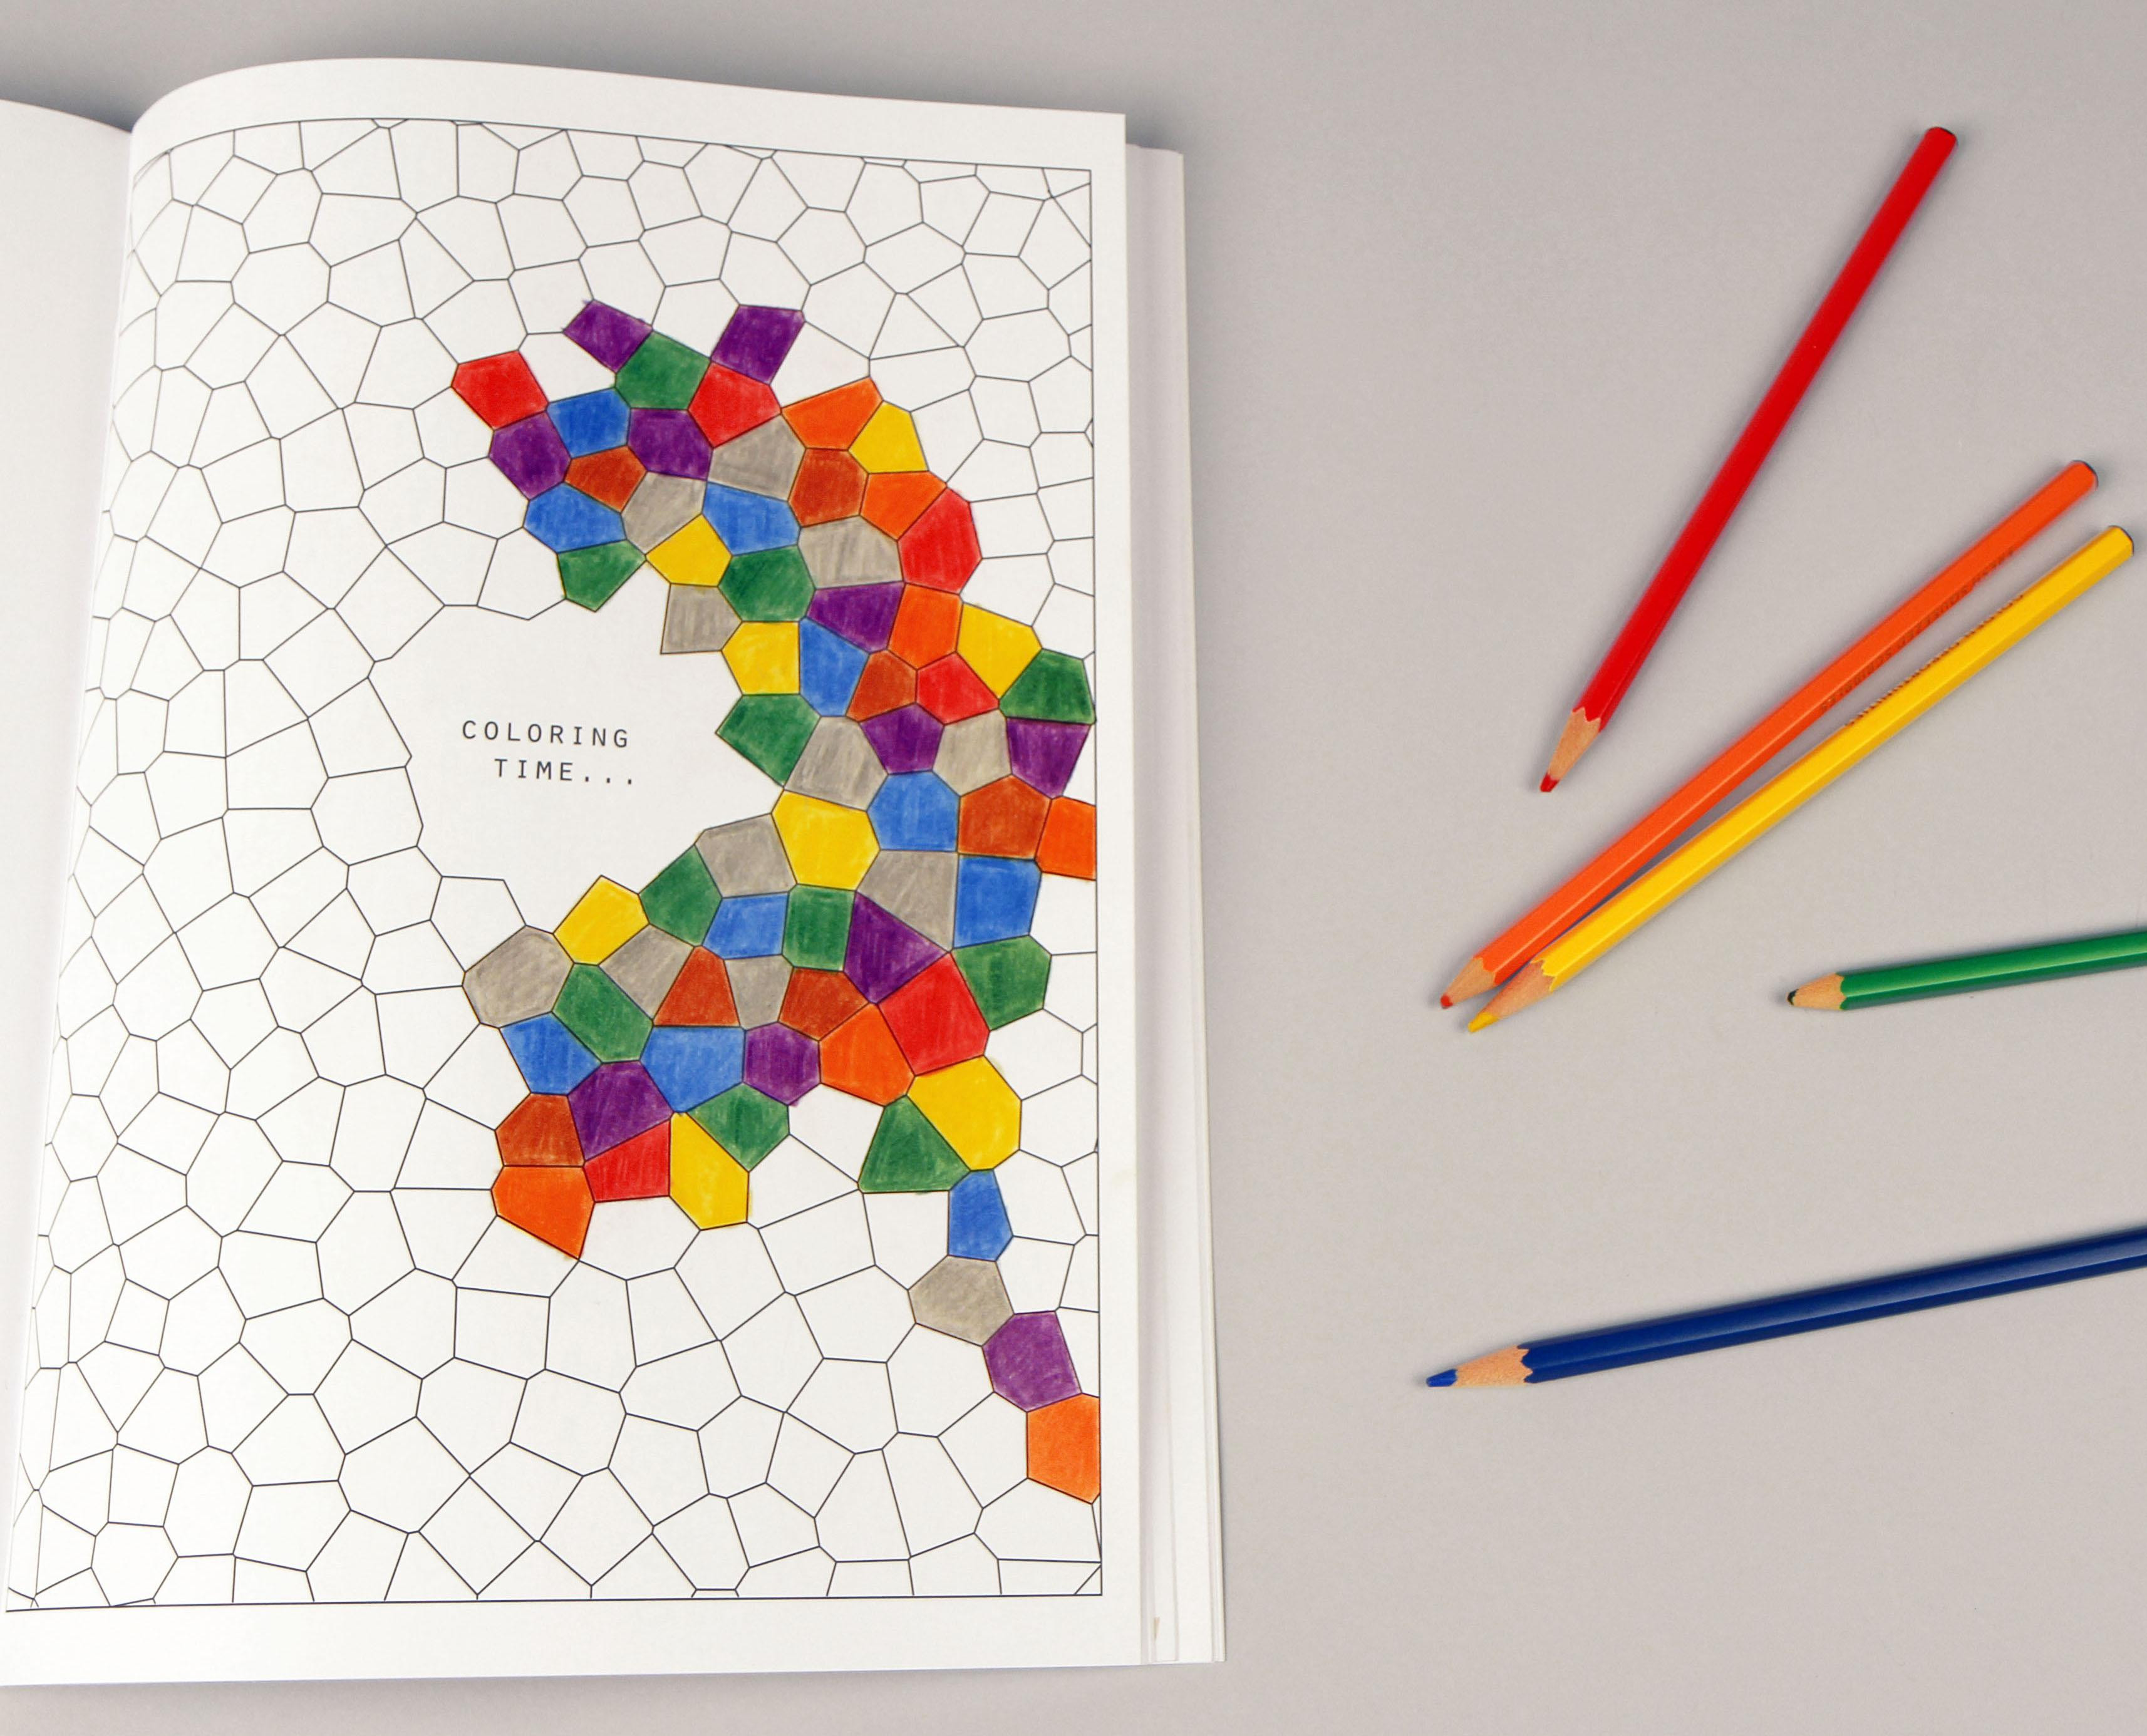 Colored Pencil Coloring Books  Brain Science Coloring Book with Bright Ideas Colored